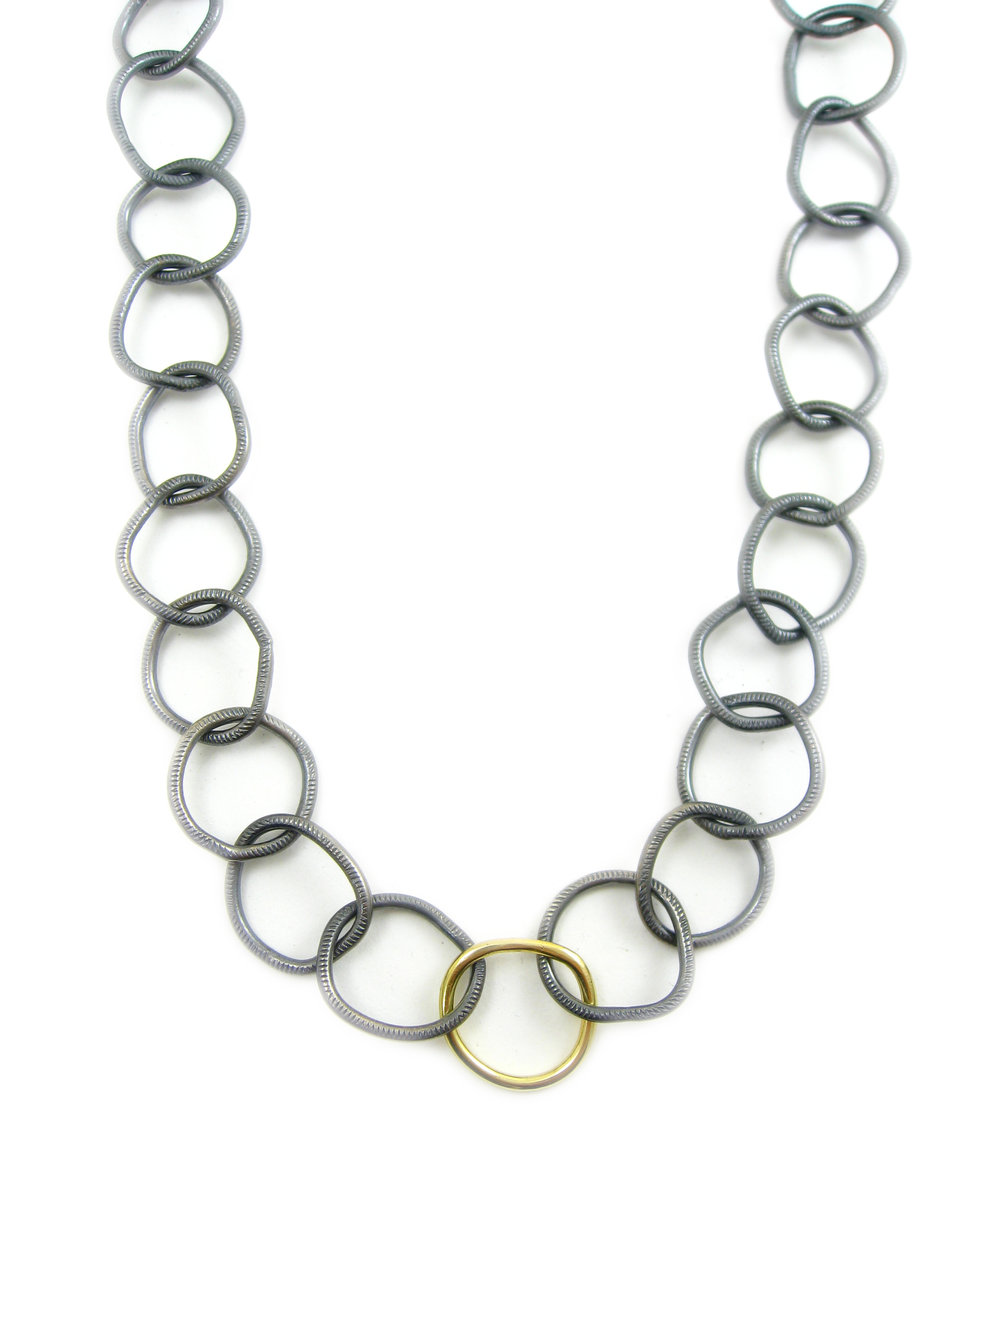 oxiidzed silver chain with 18 karat gold link - recycled silver and recycled gold made in San Francisco - Sharon Z Jewelry